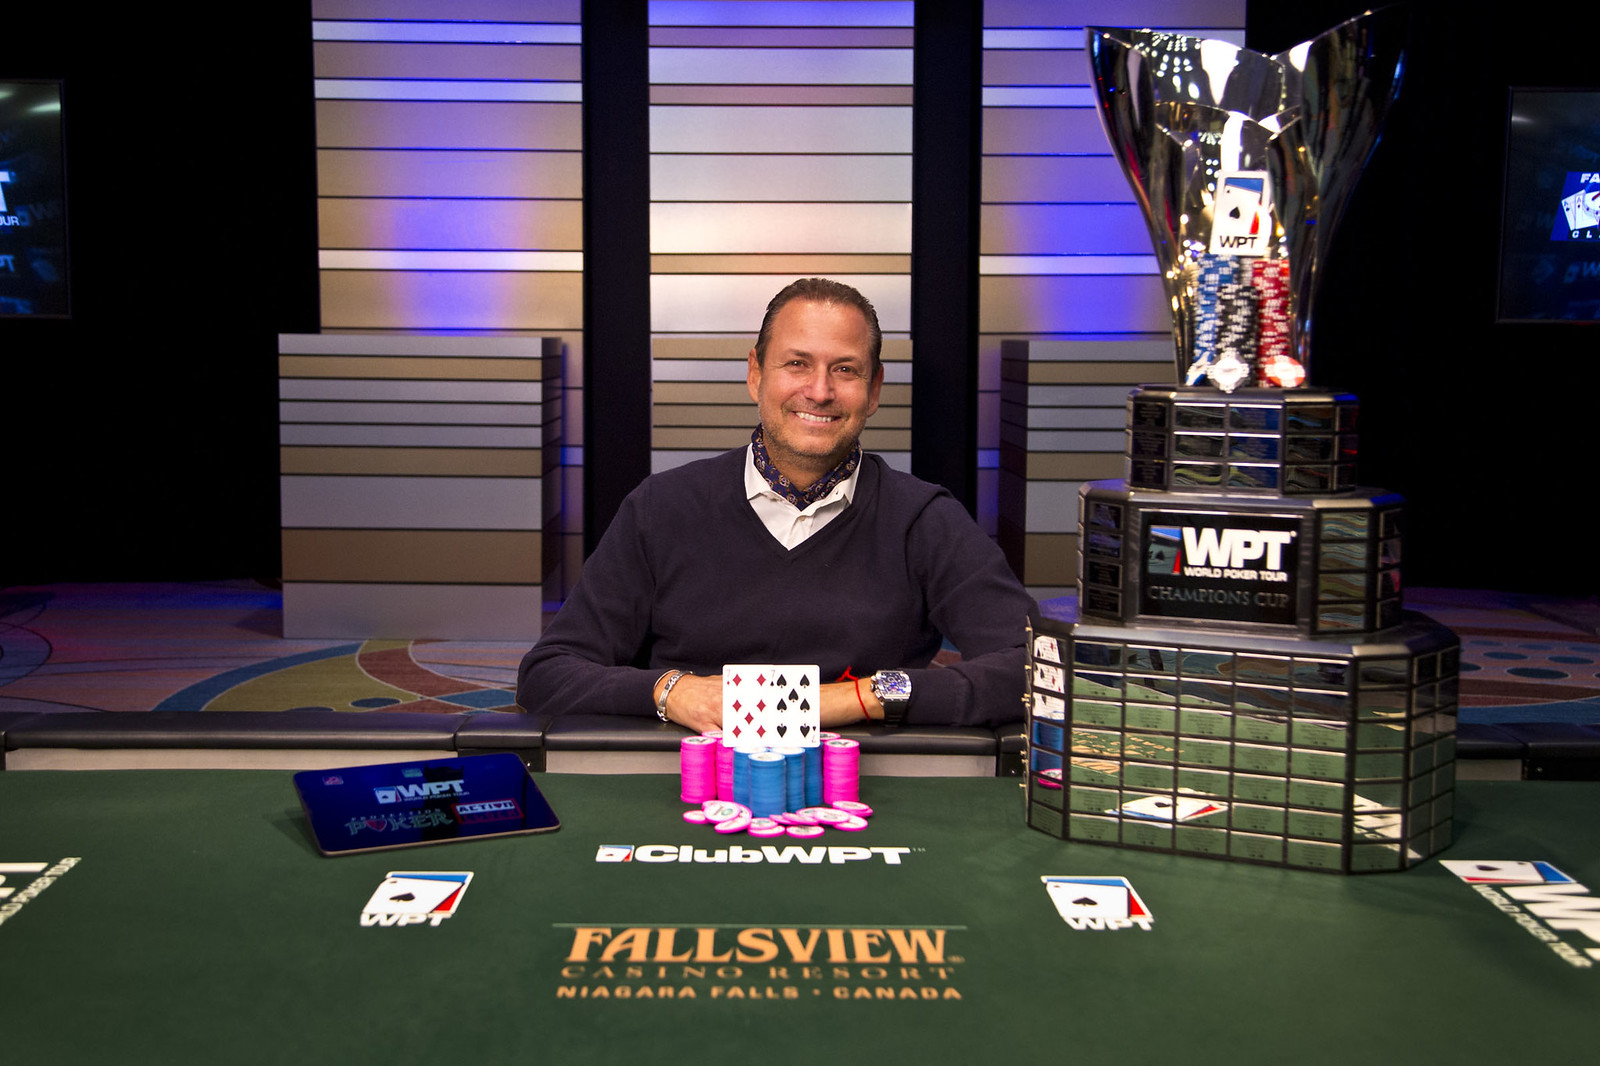 WPT Fallsview Poker Classic: Eric Afriat Joins The Triple Title WPT Club